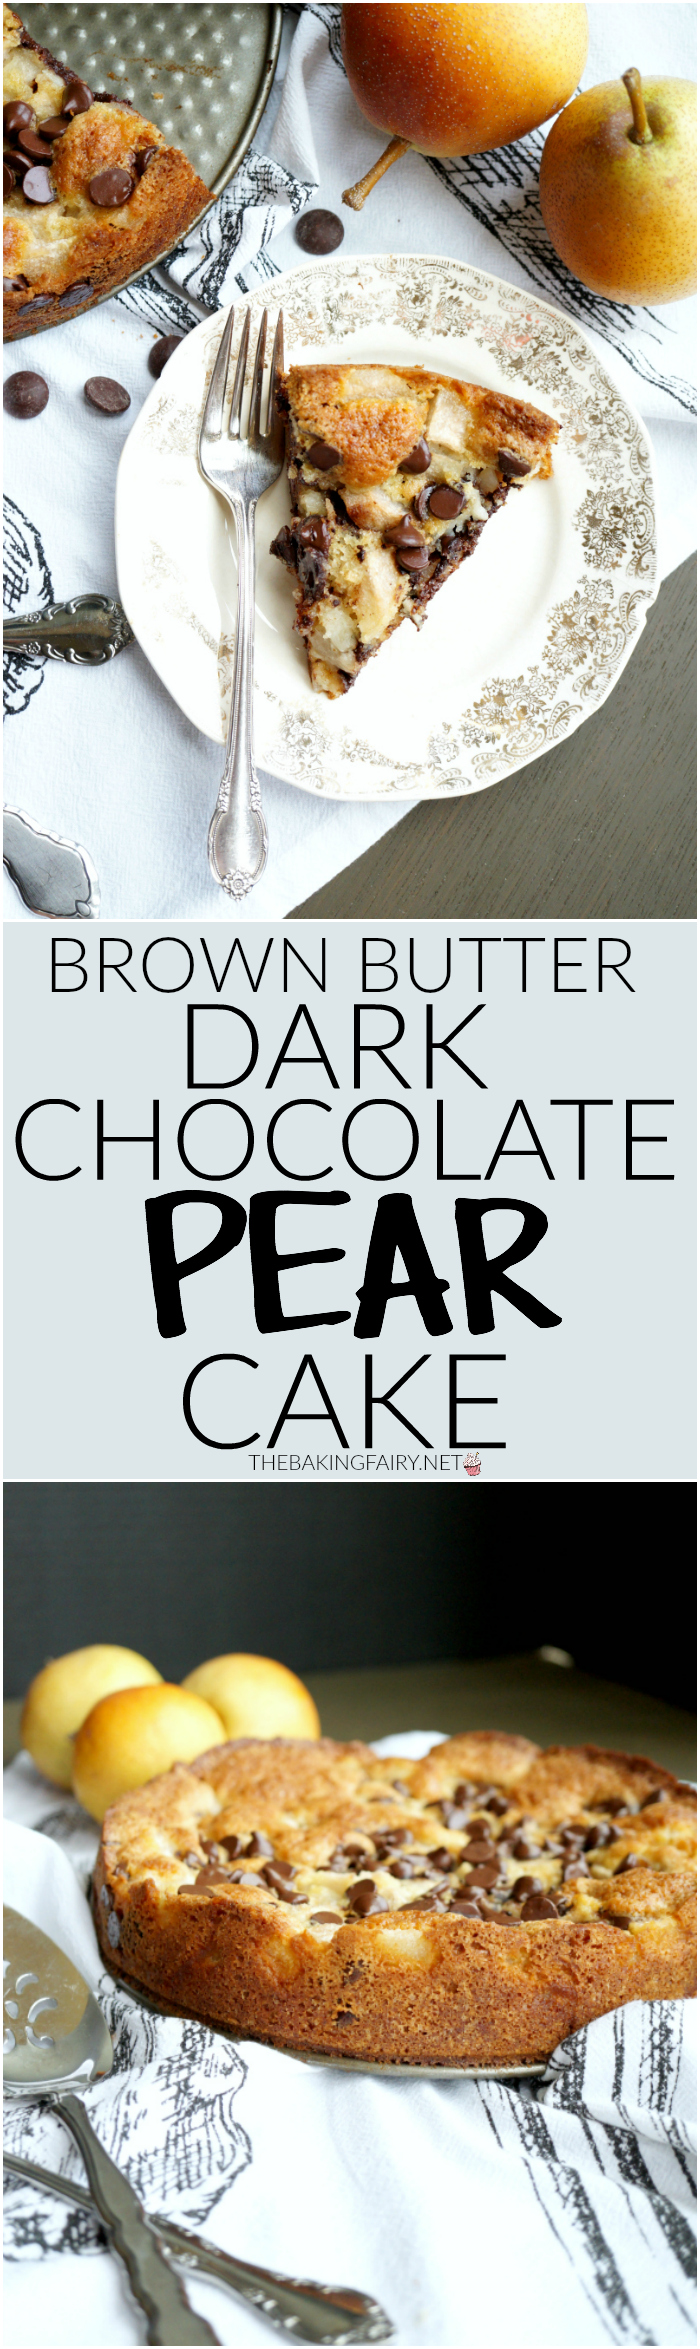 brown butter chocolate pear cake | The Baking Fairy